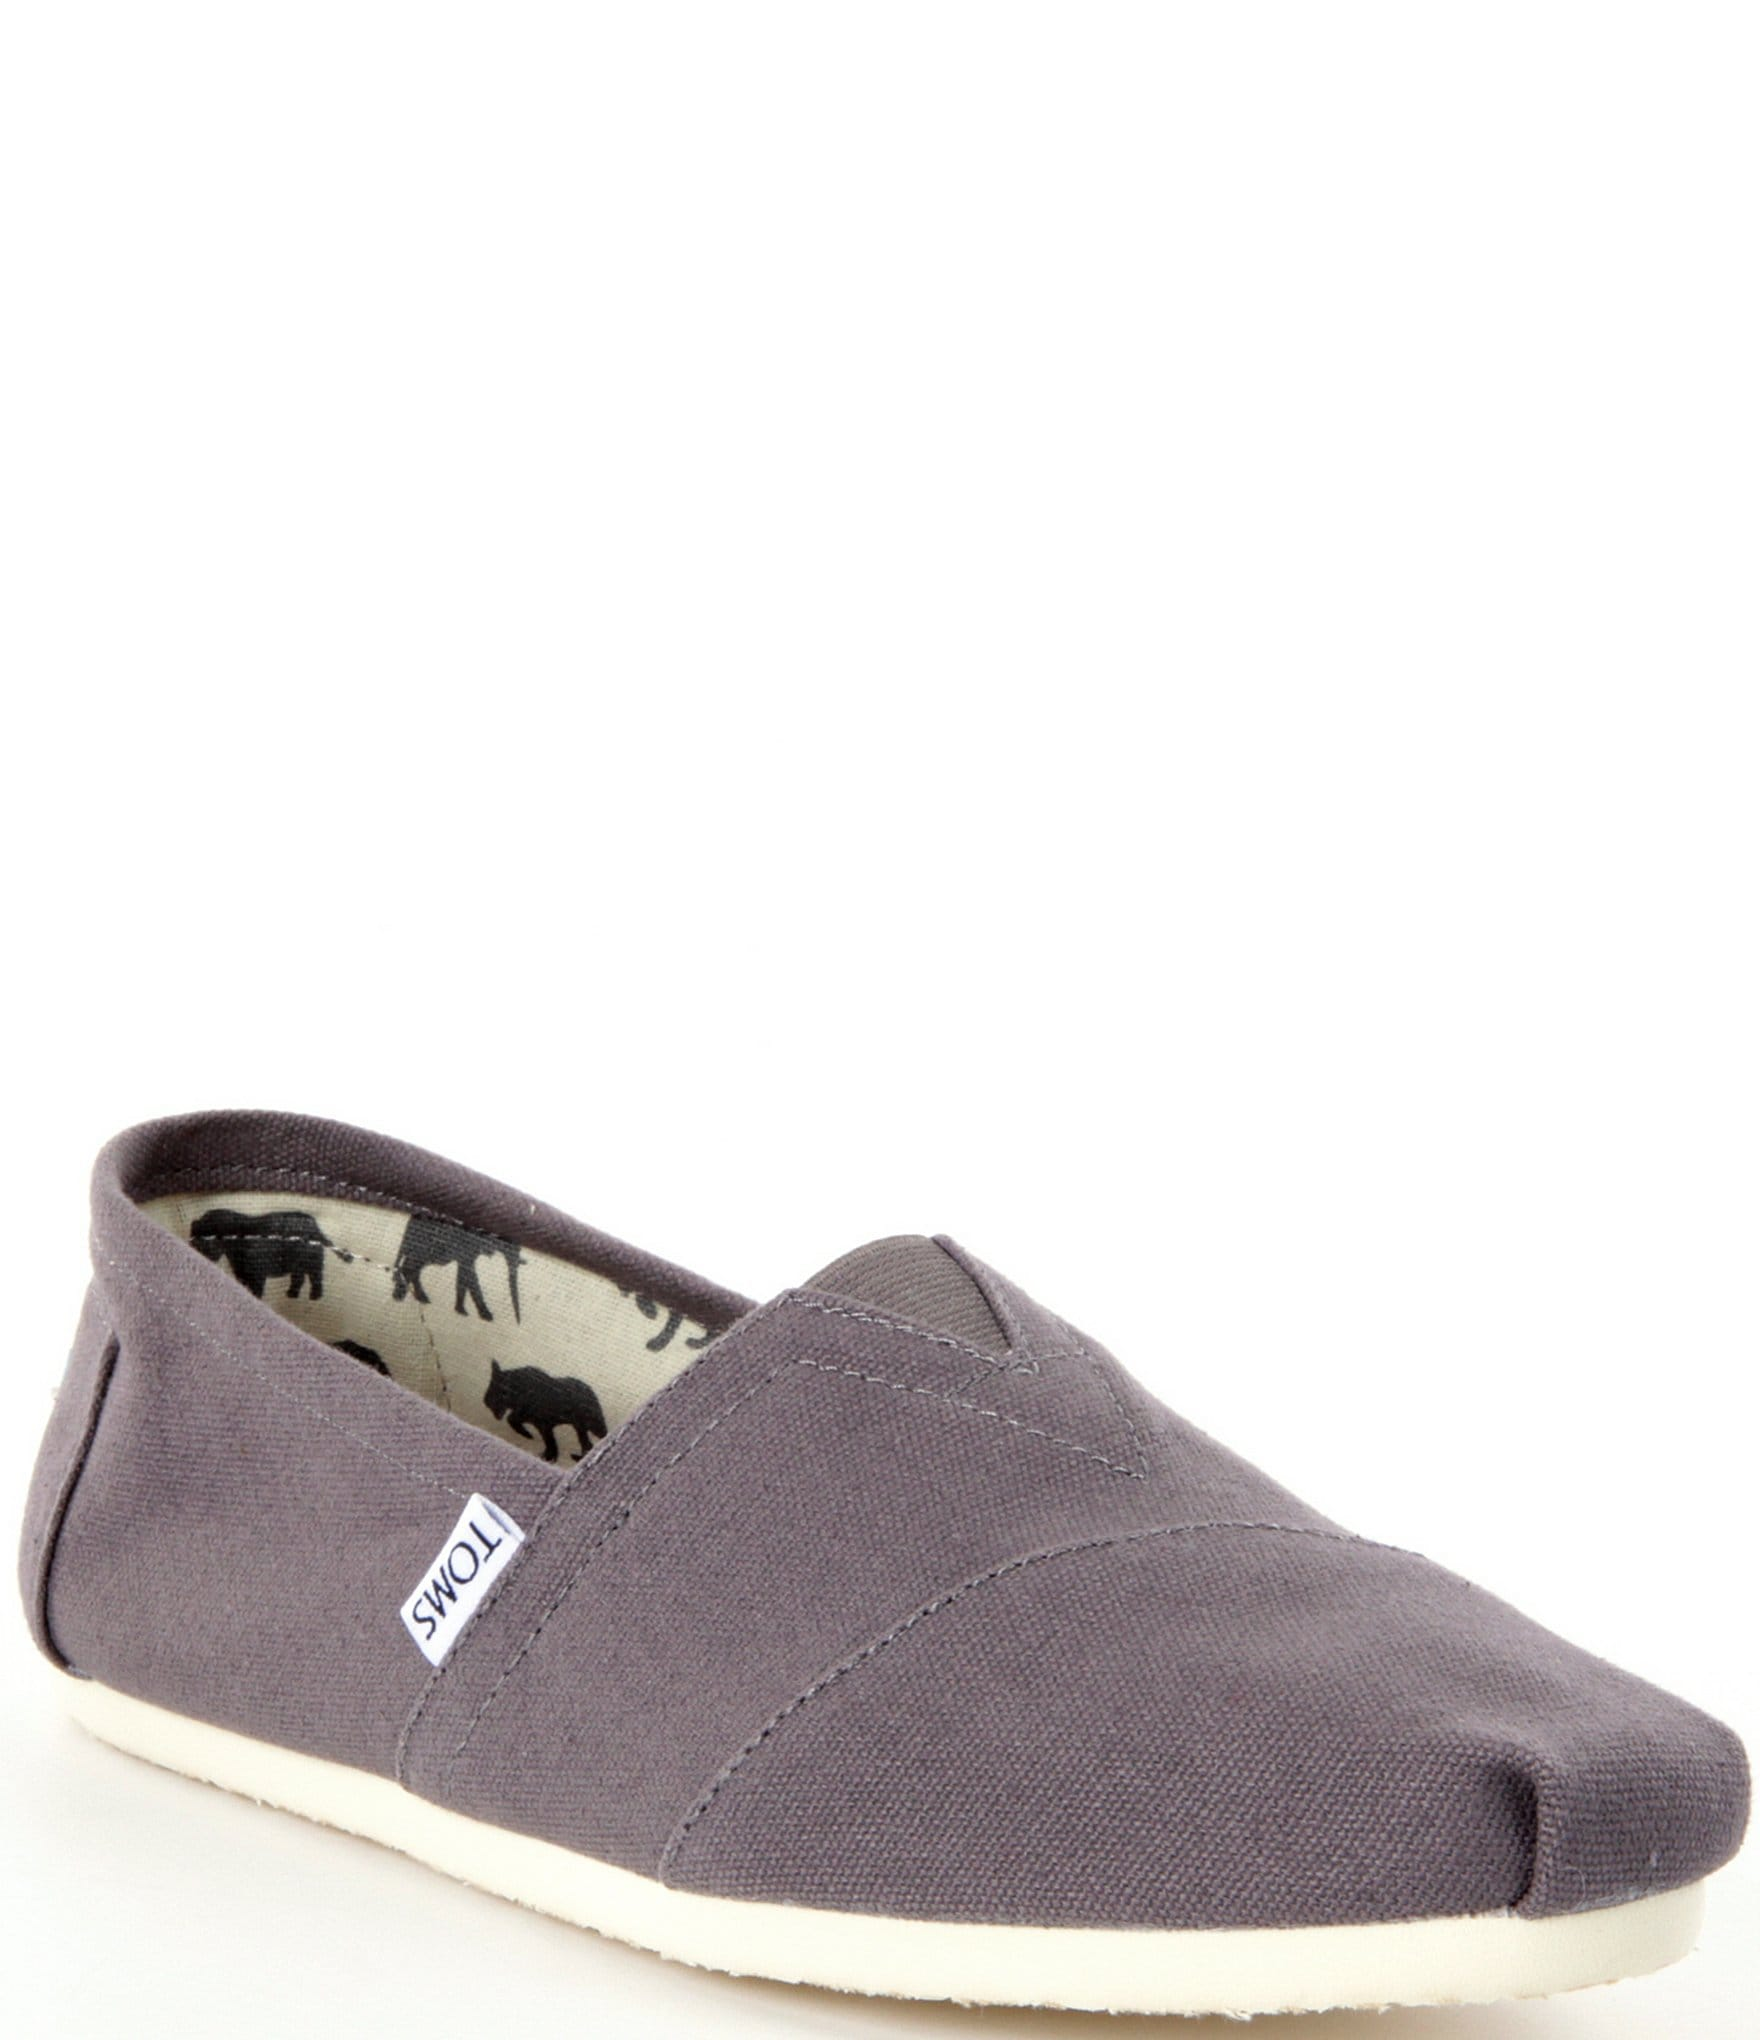 Kids Toms Shoes